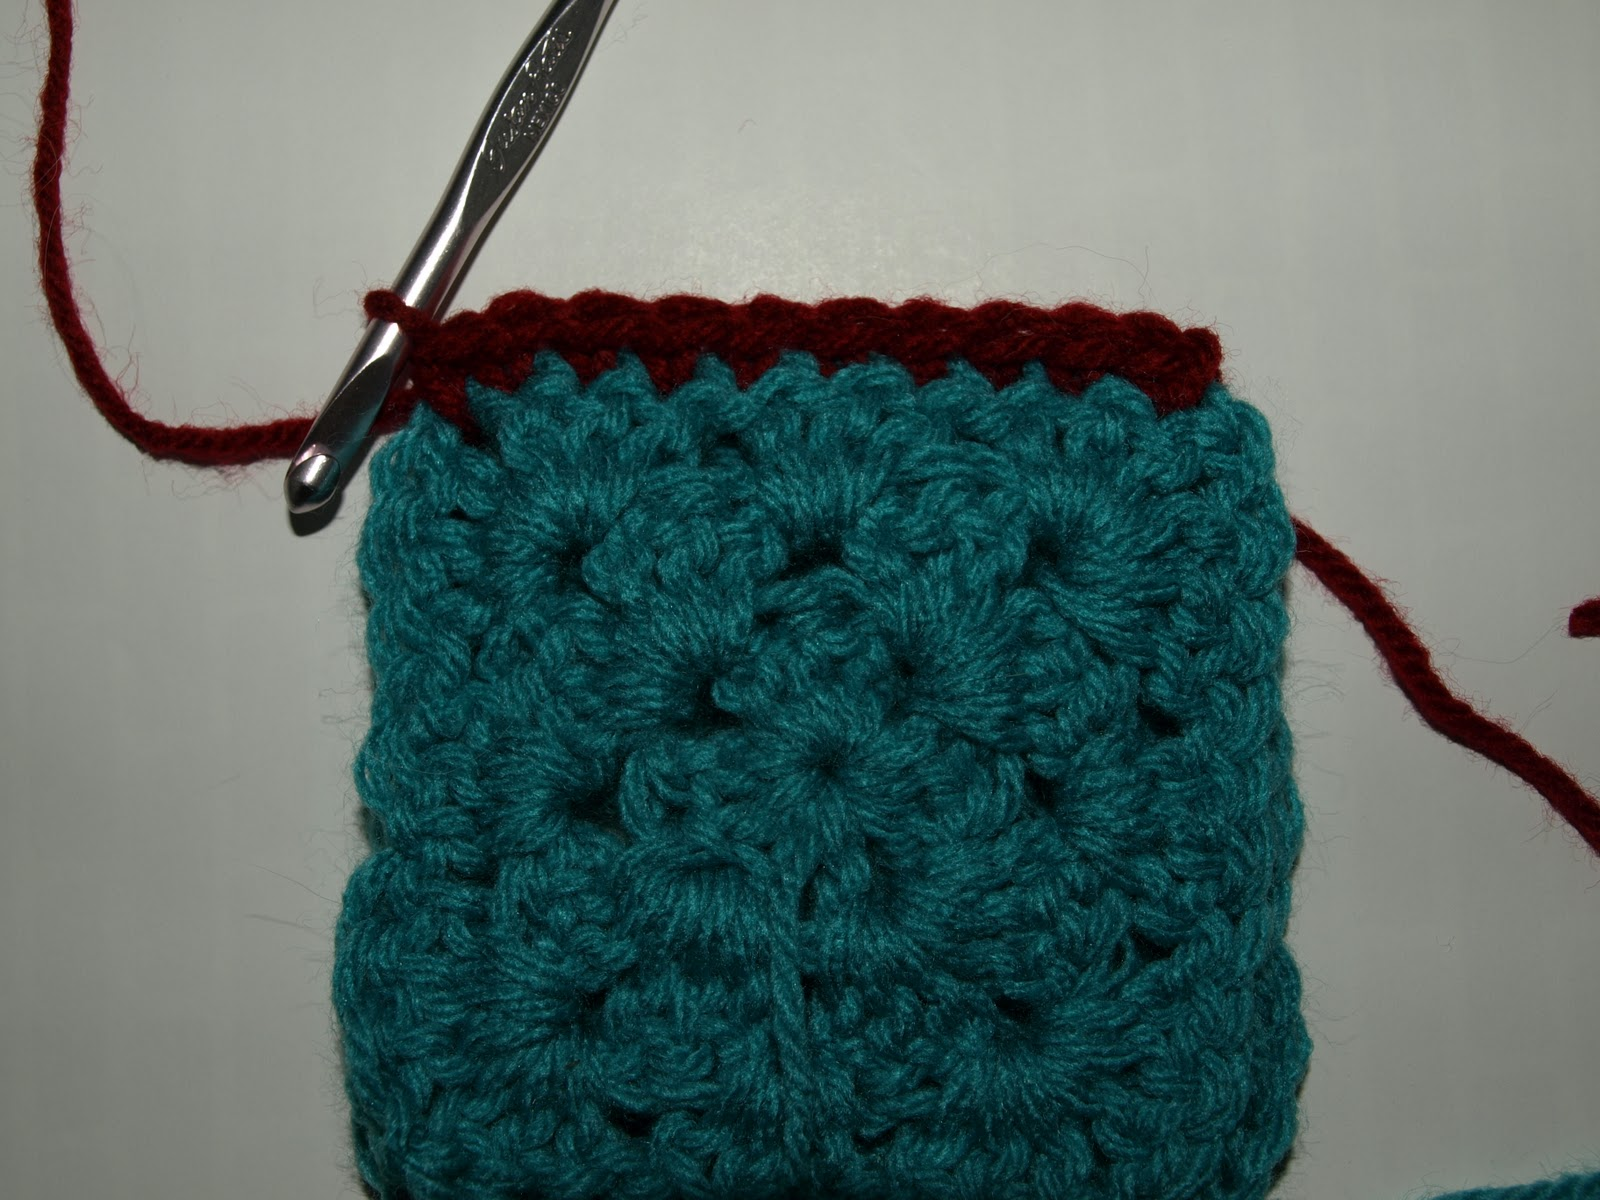 CrochetByKarin: The Single Crochet Joining Stitch